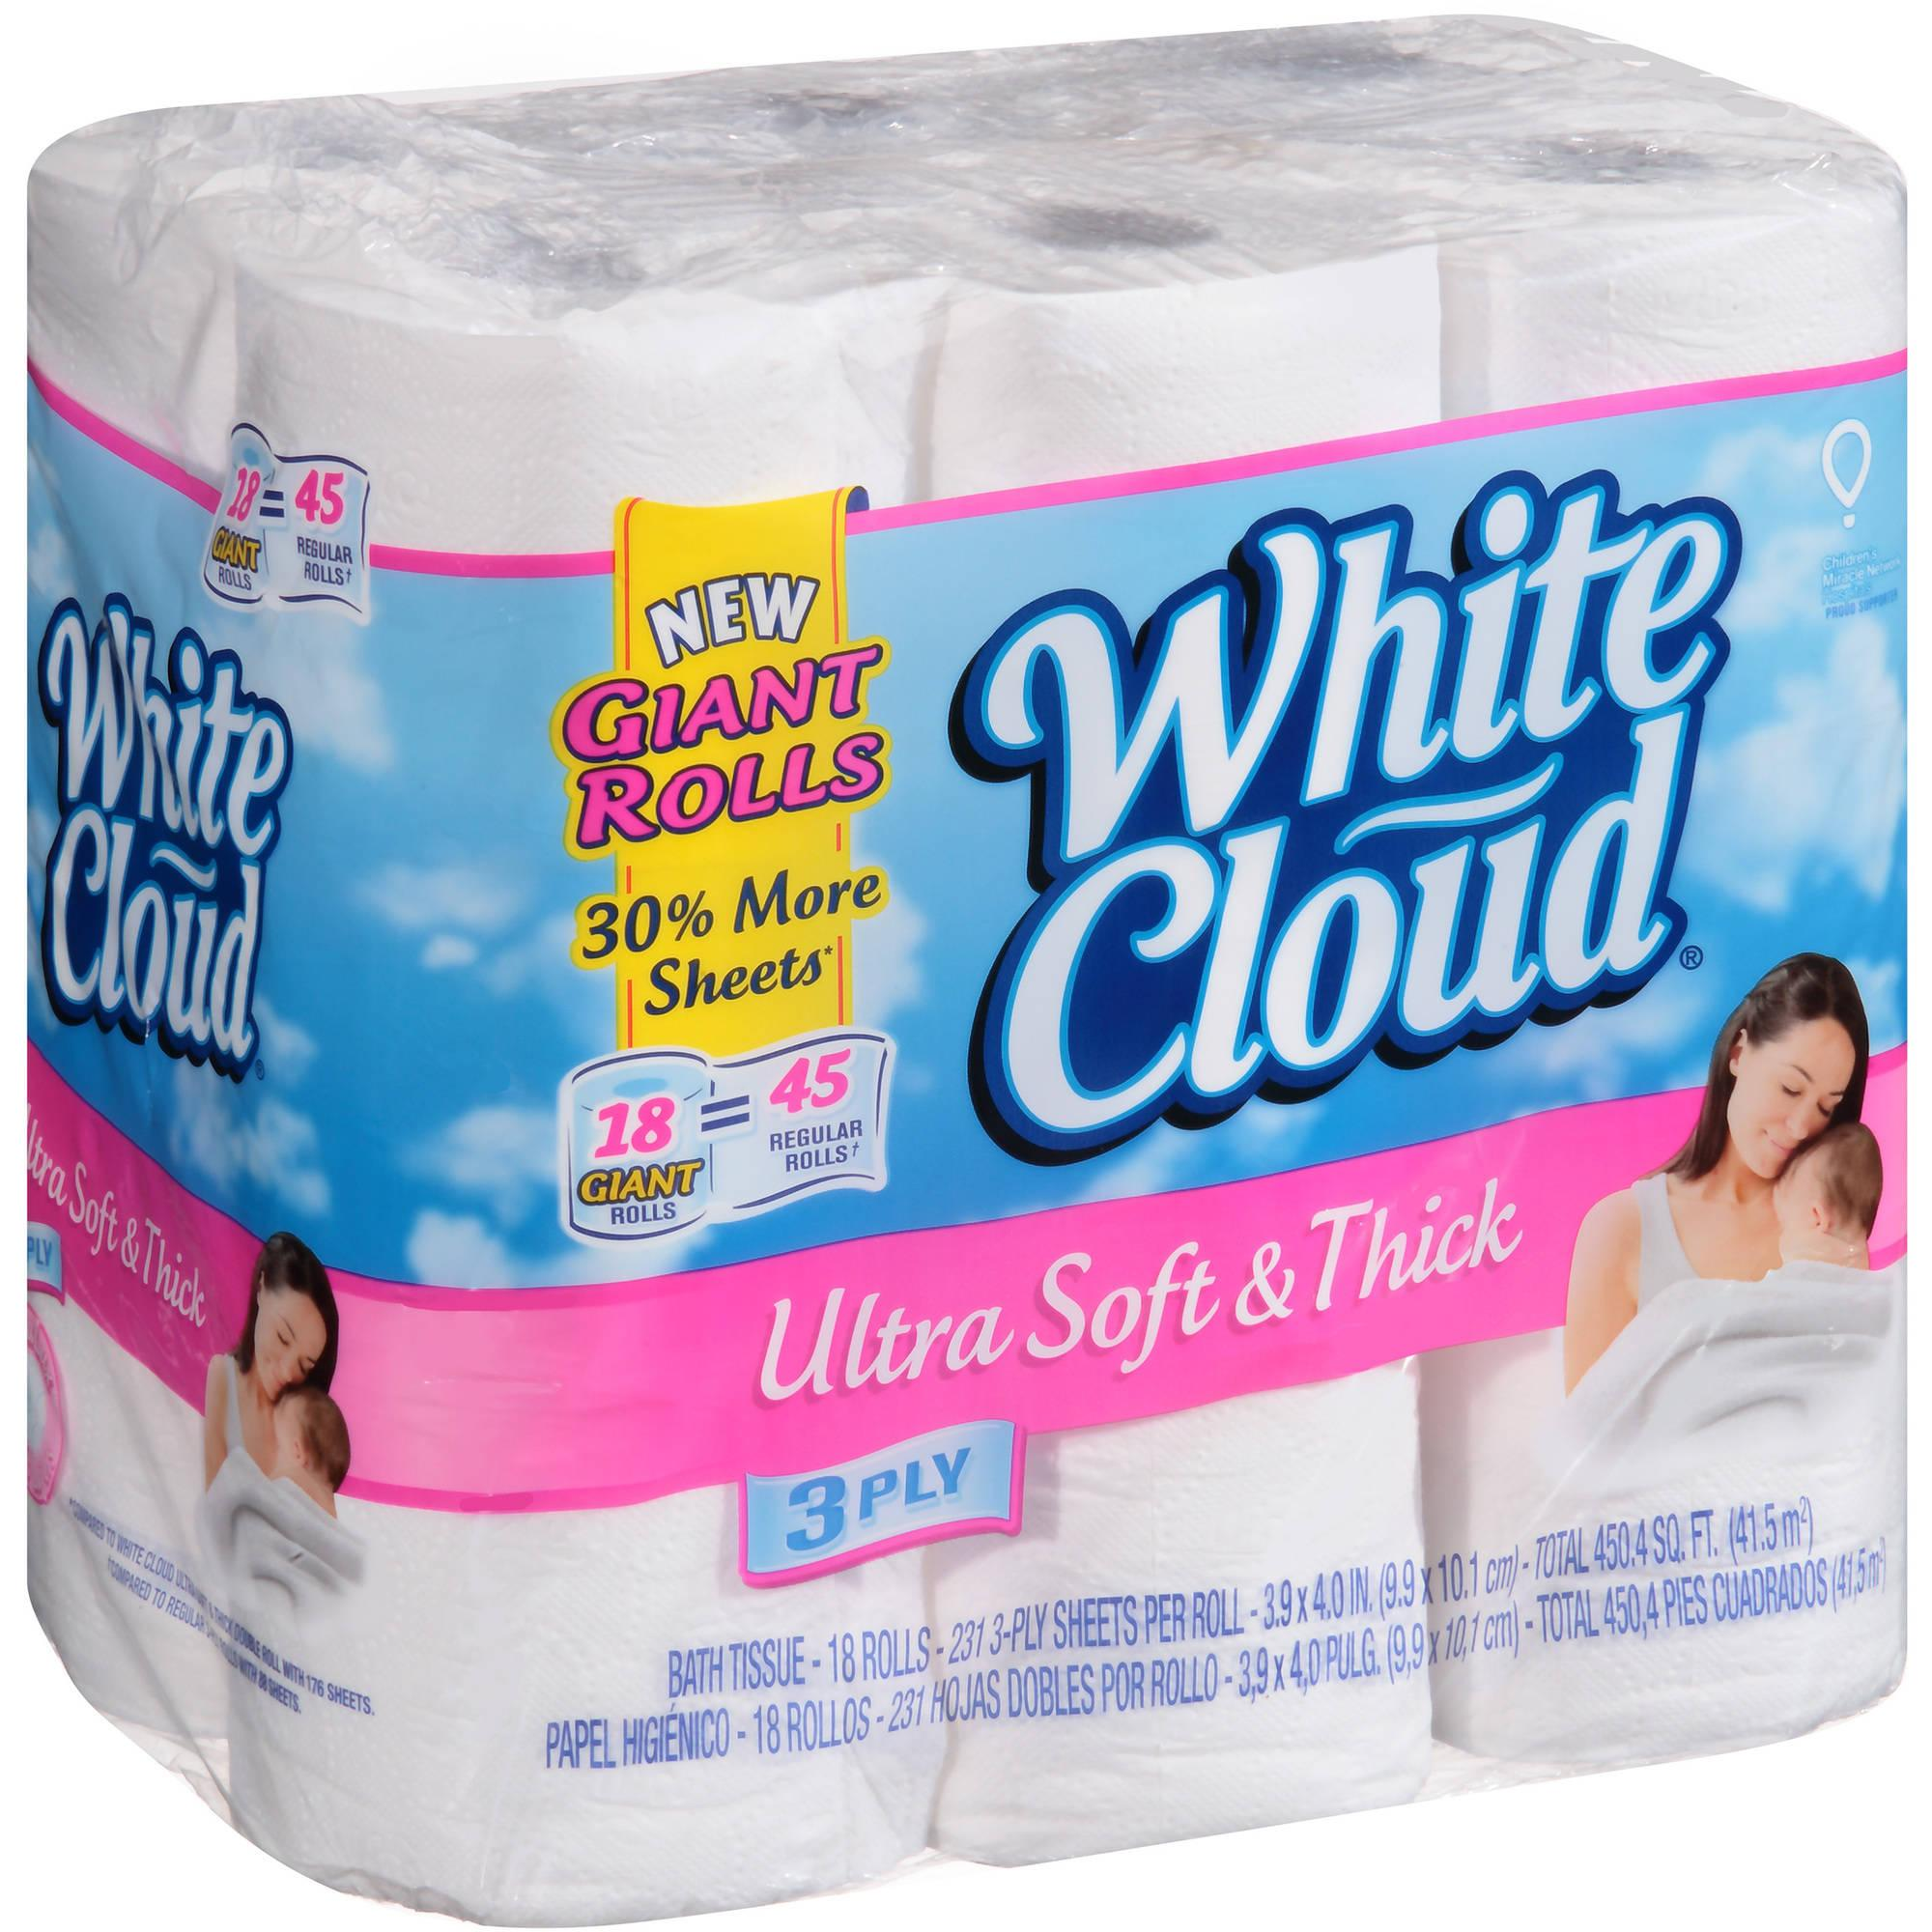 White Cloud Ultra Soft & Thick Bath Tissue Giant Rolls, 3 ply ...